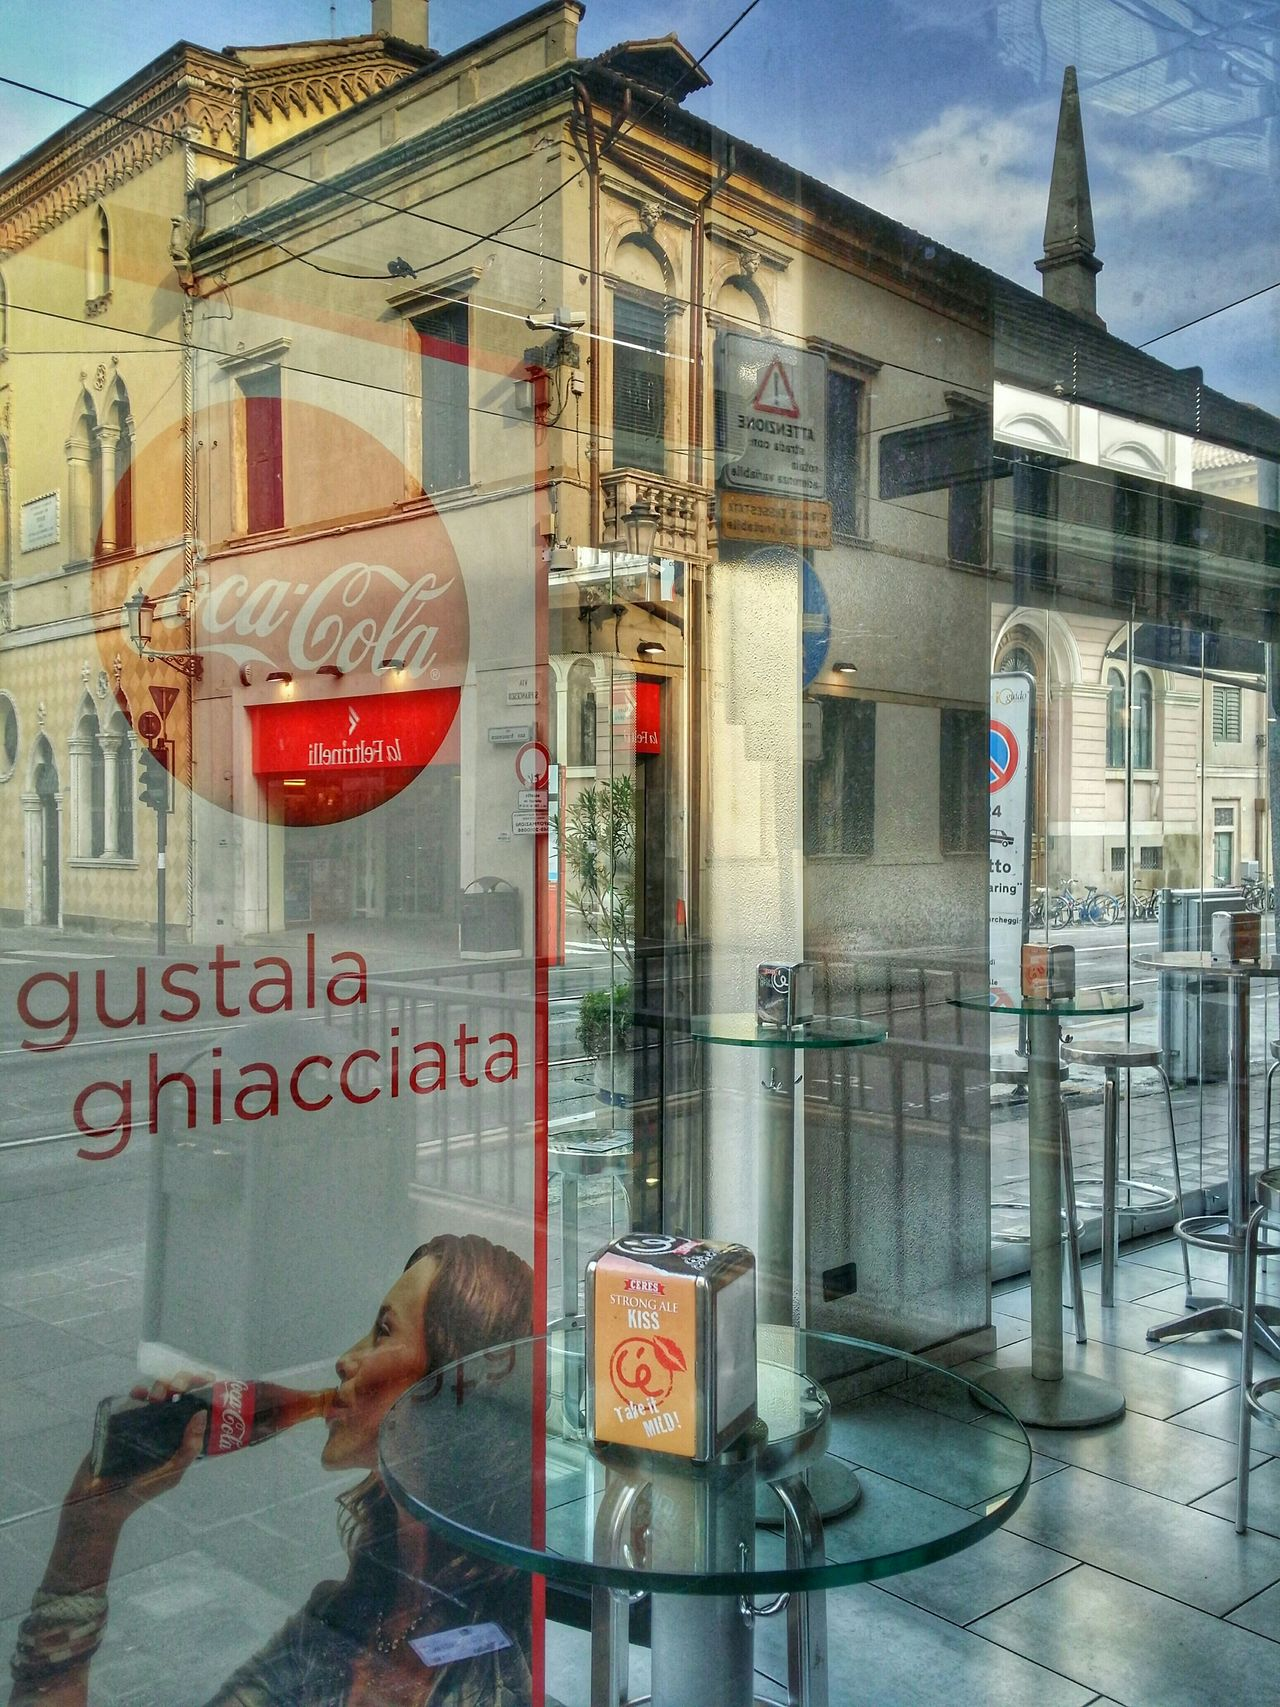 Cool experiment with reflections, shadows, and transparencies in Padua, Italy Traveling Italy Padua Mobile Photography Art Fineart Urban Architecture Historical Buildings Reflections Shadows Transparencies Fresh Drinks